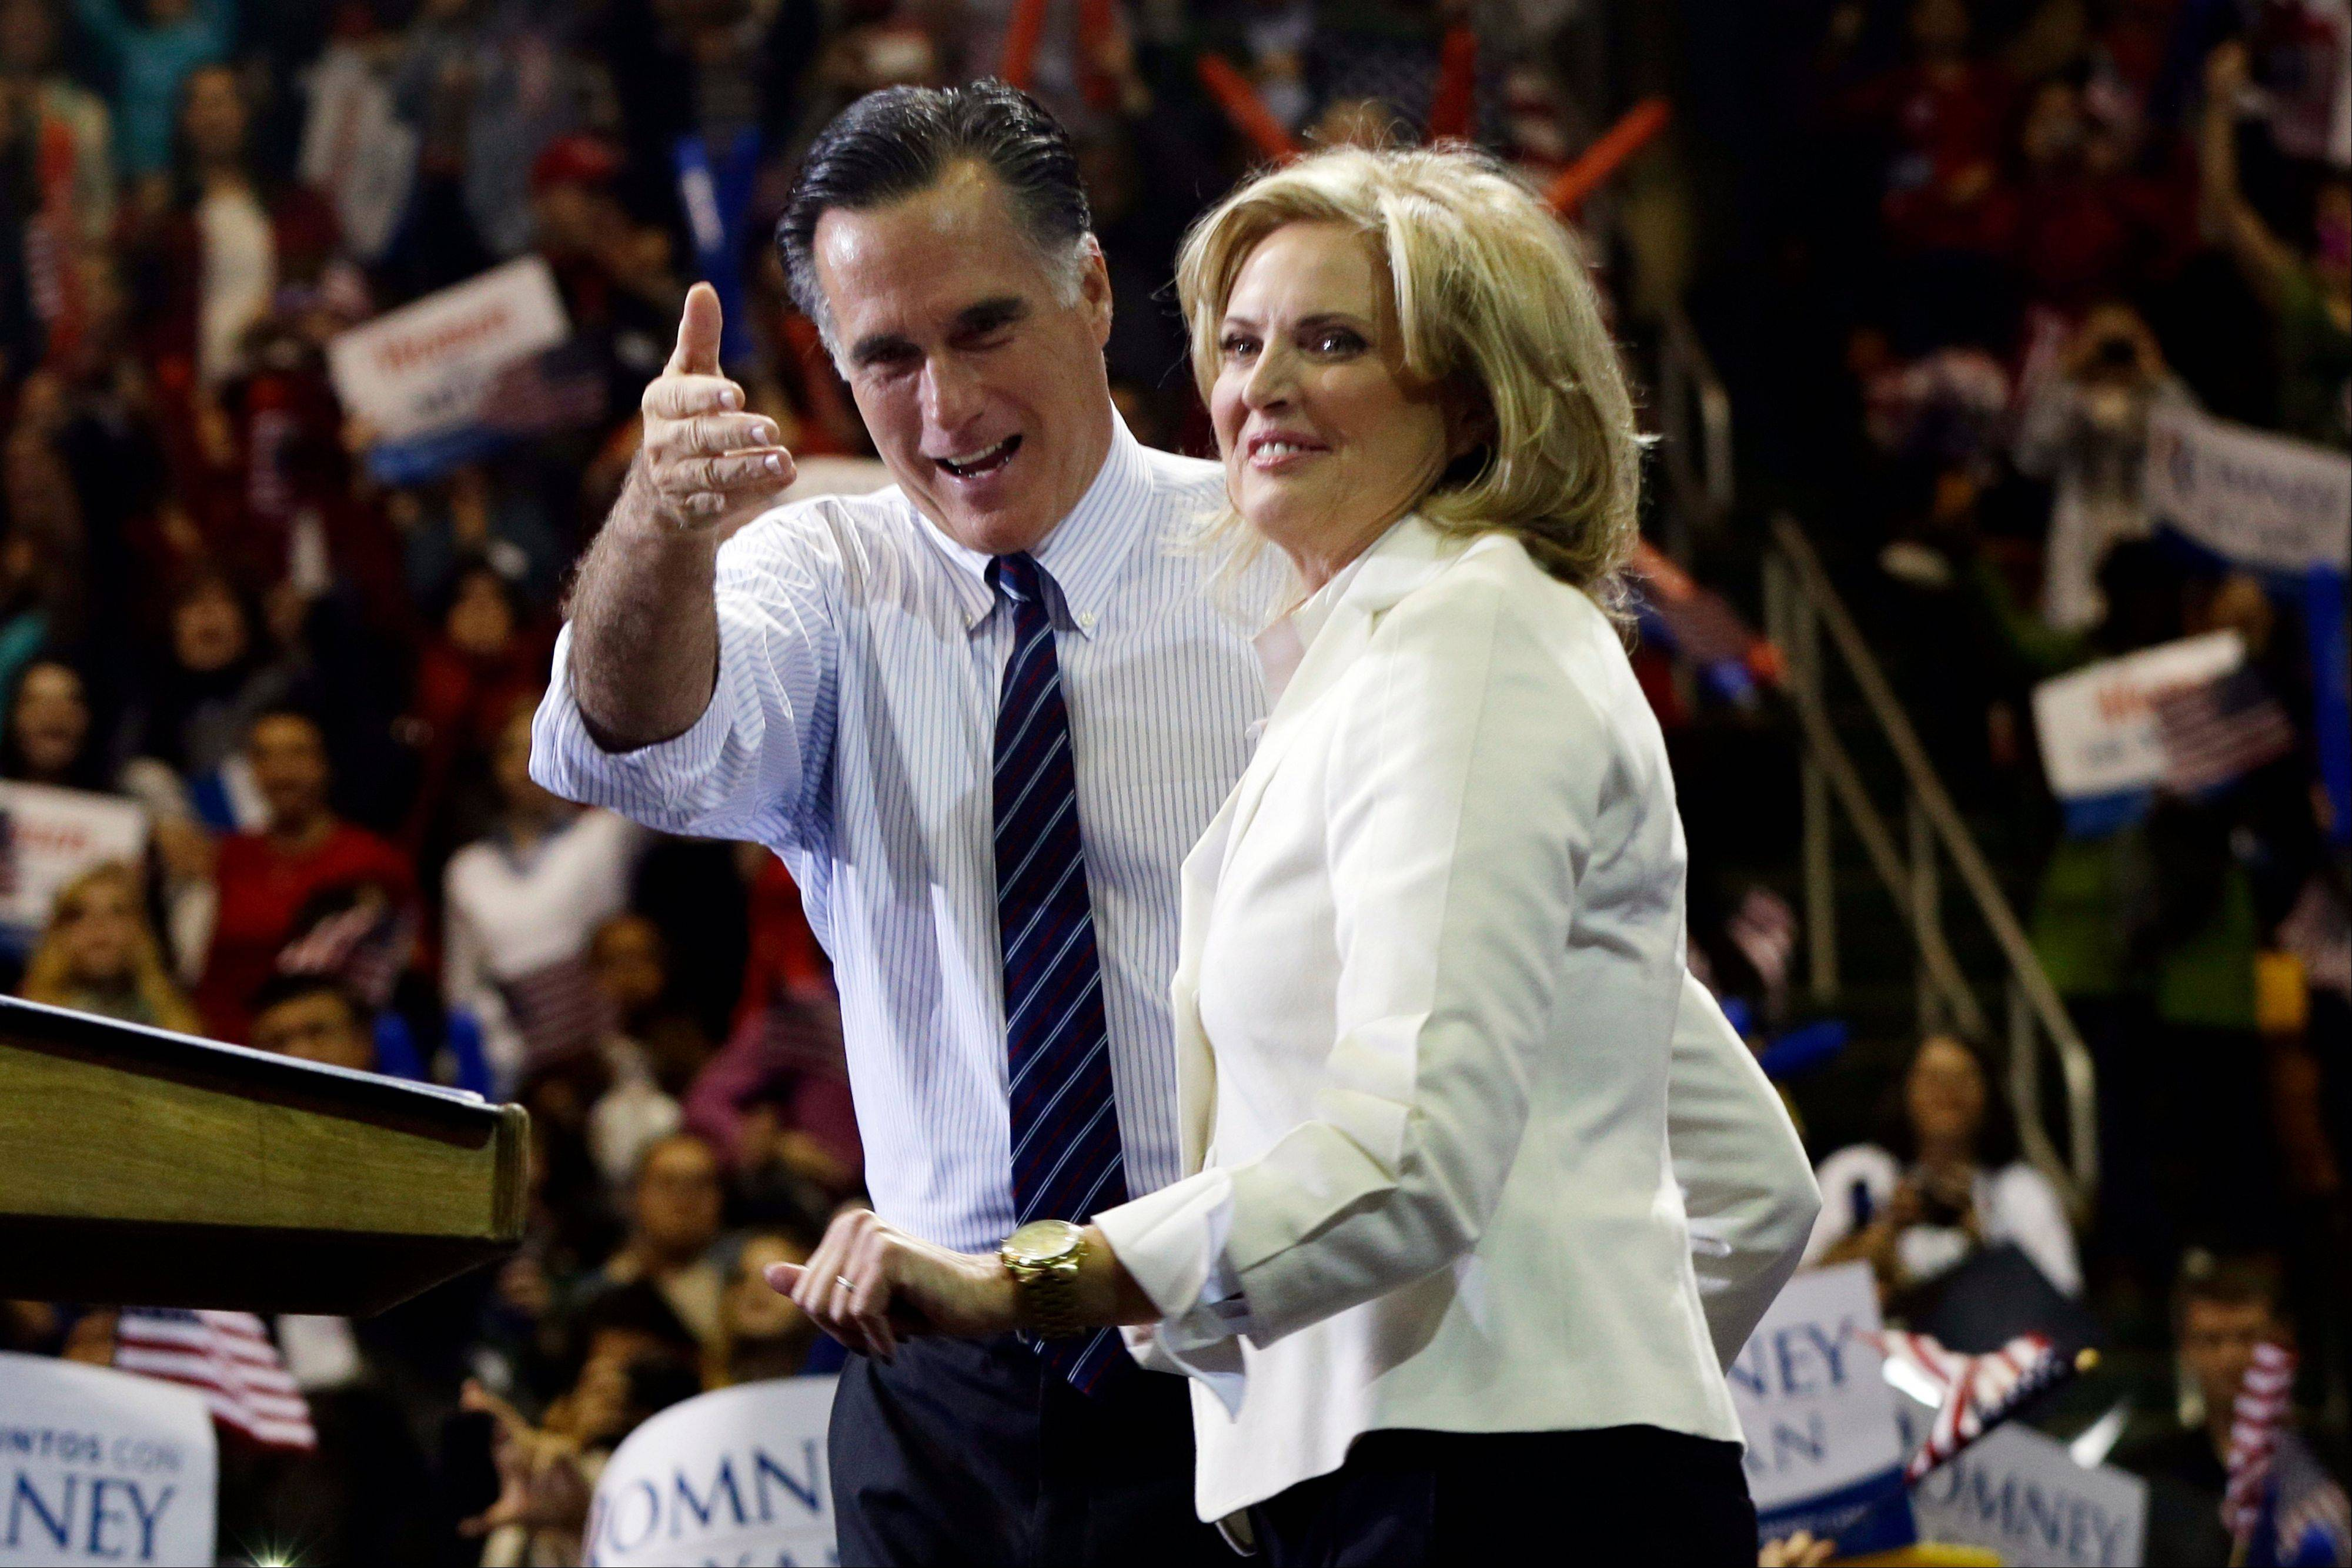 Republican presidential candidate and former Massachusetts Gov. Mitt Romney and wife Ann Romney stand onstage at a campaign rally at The Patriot Center at George Mason University in Fairfax, Va., Monday.